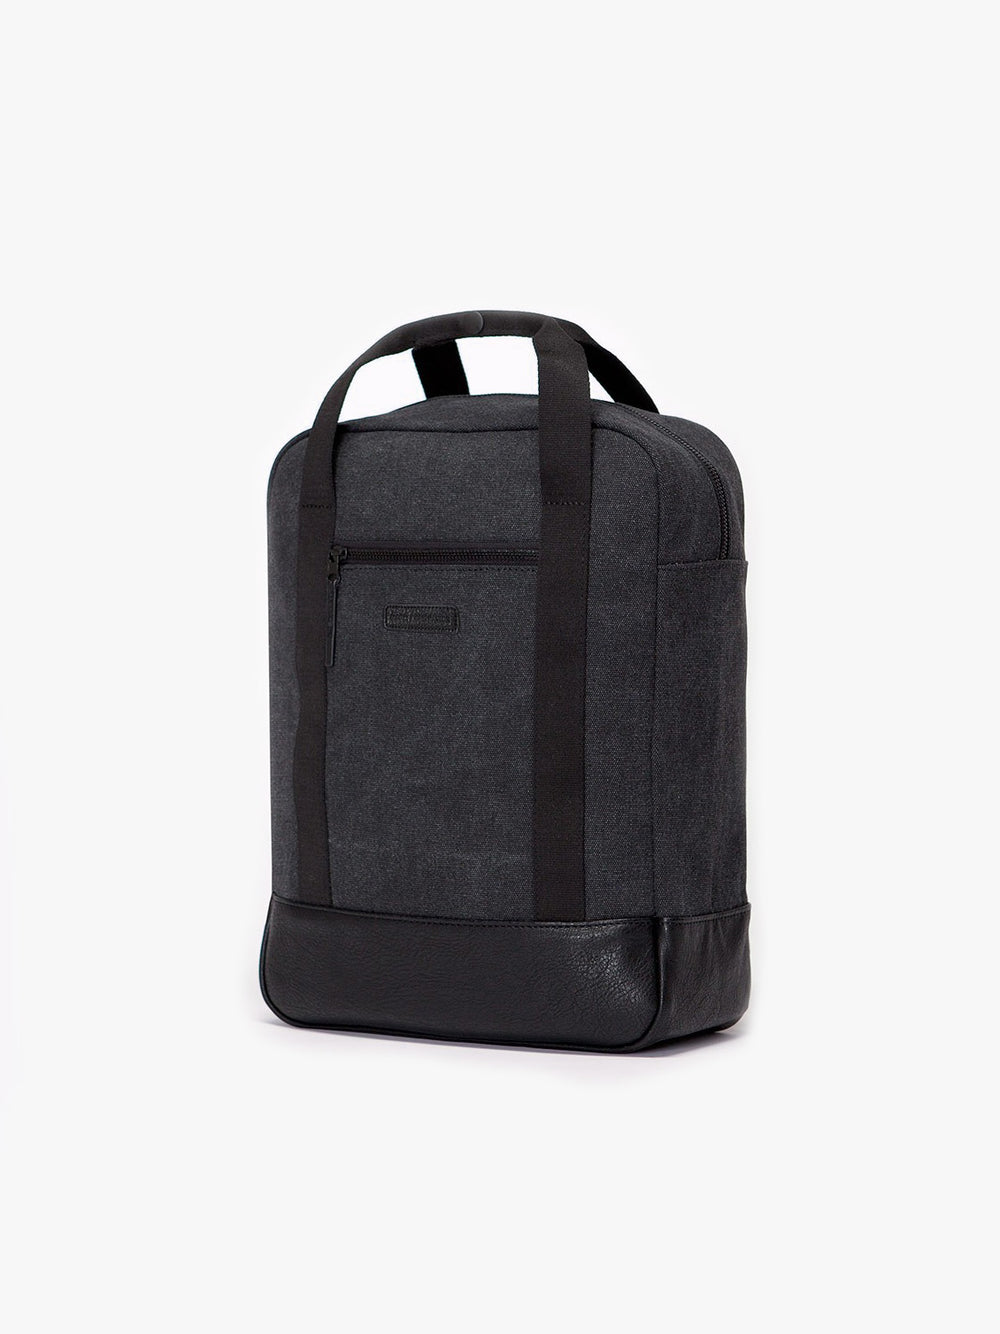 Cotton canvas Ison urban backpack with vegan leather bottom.